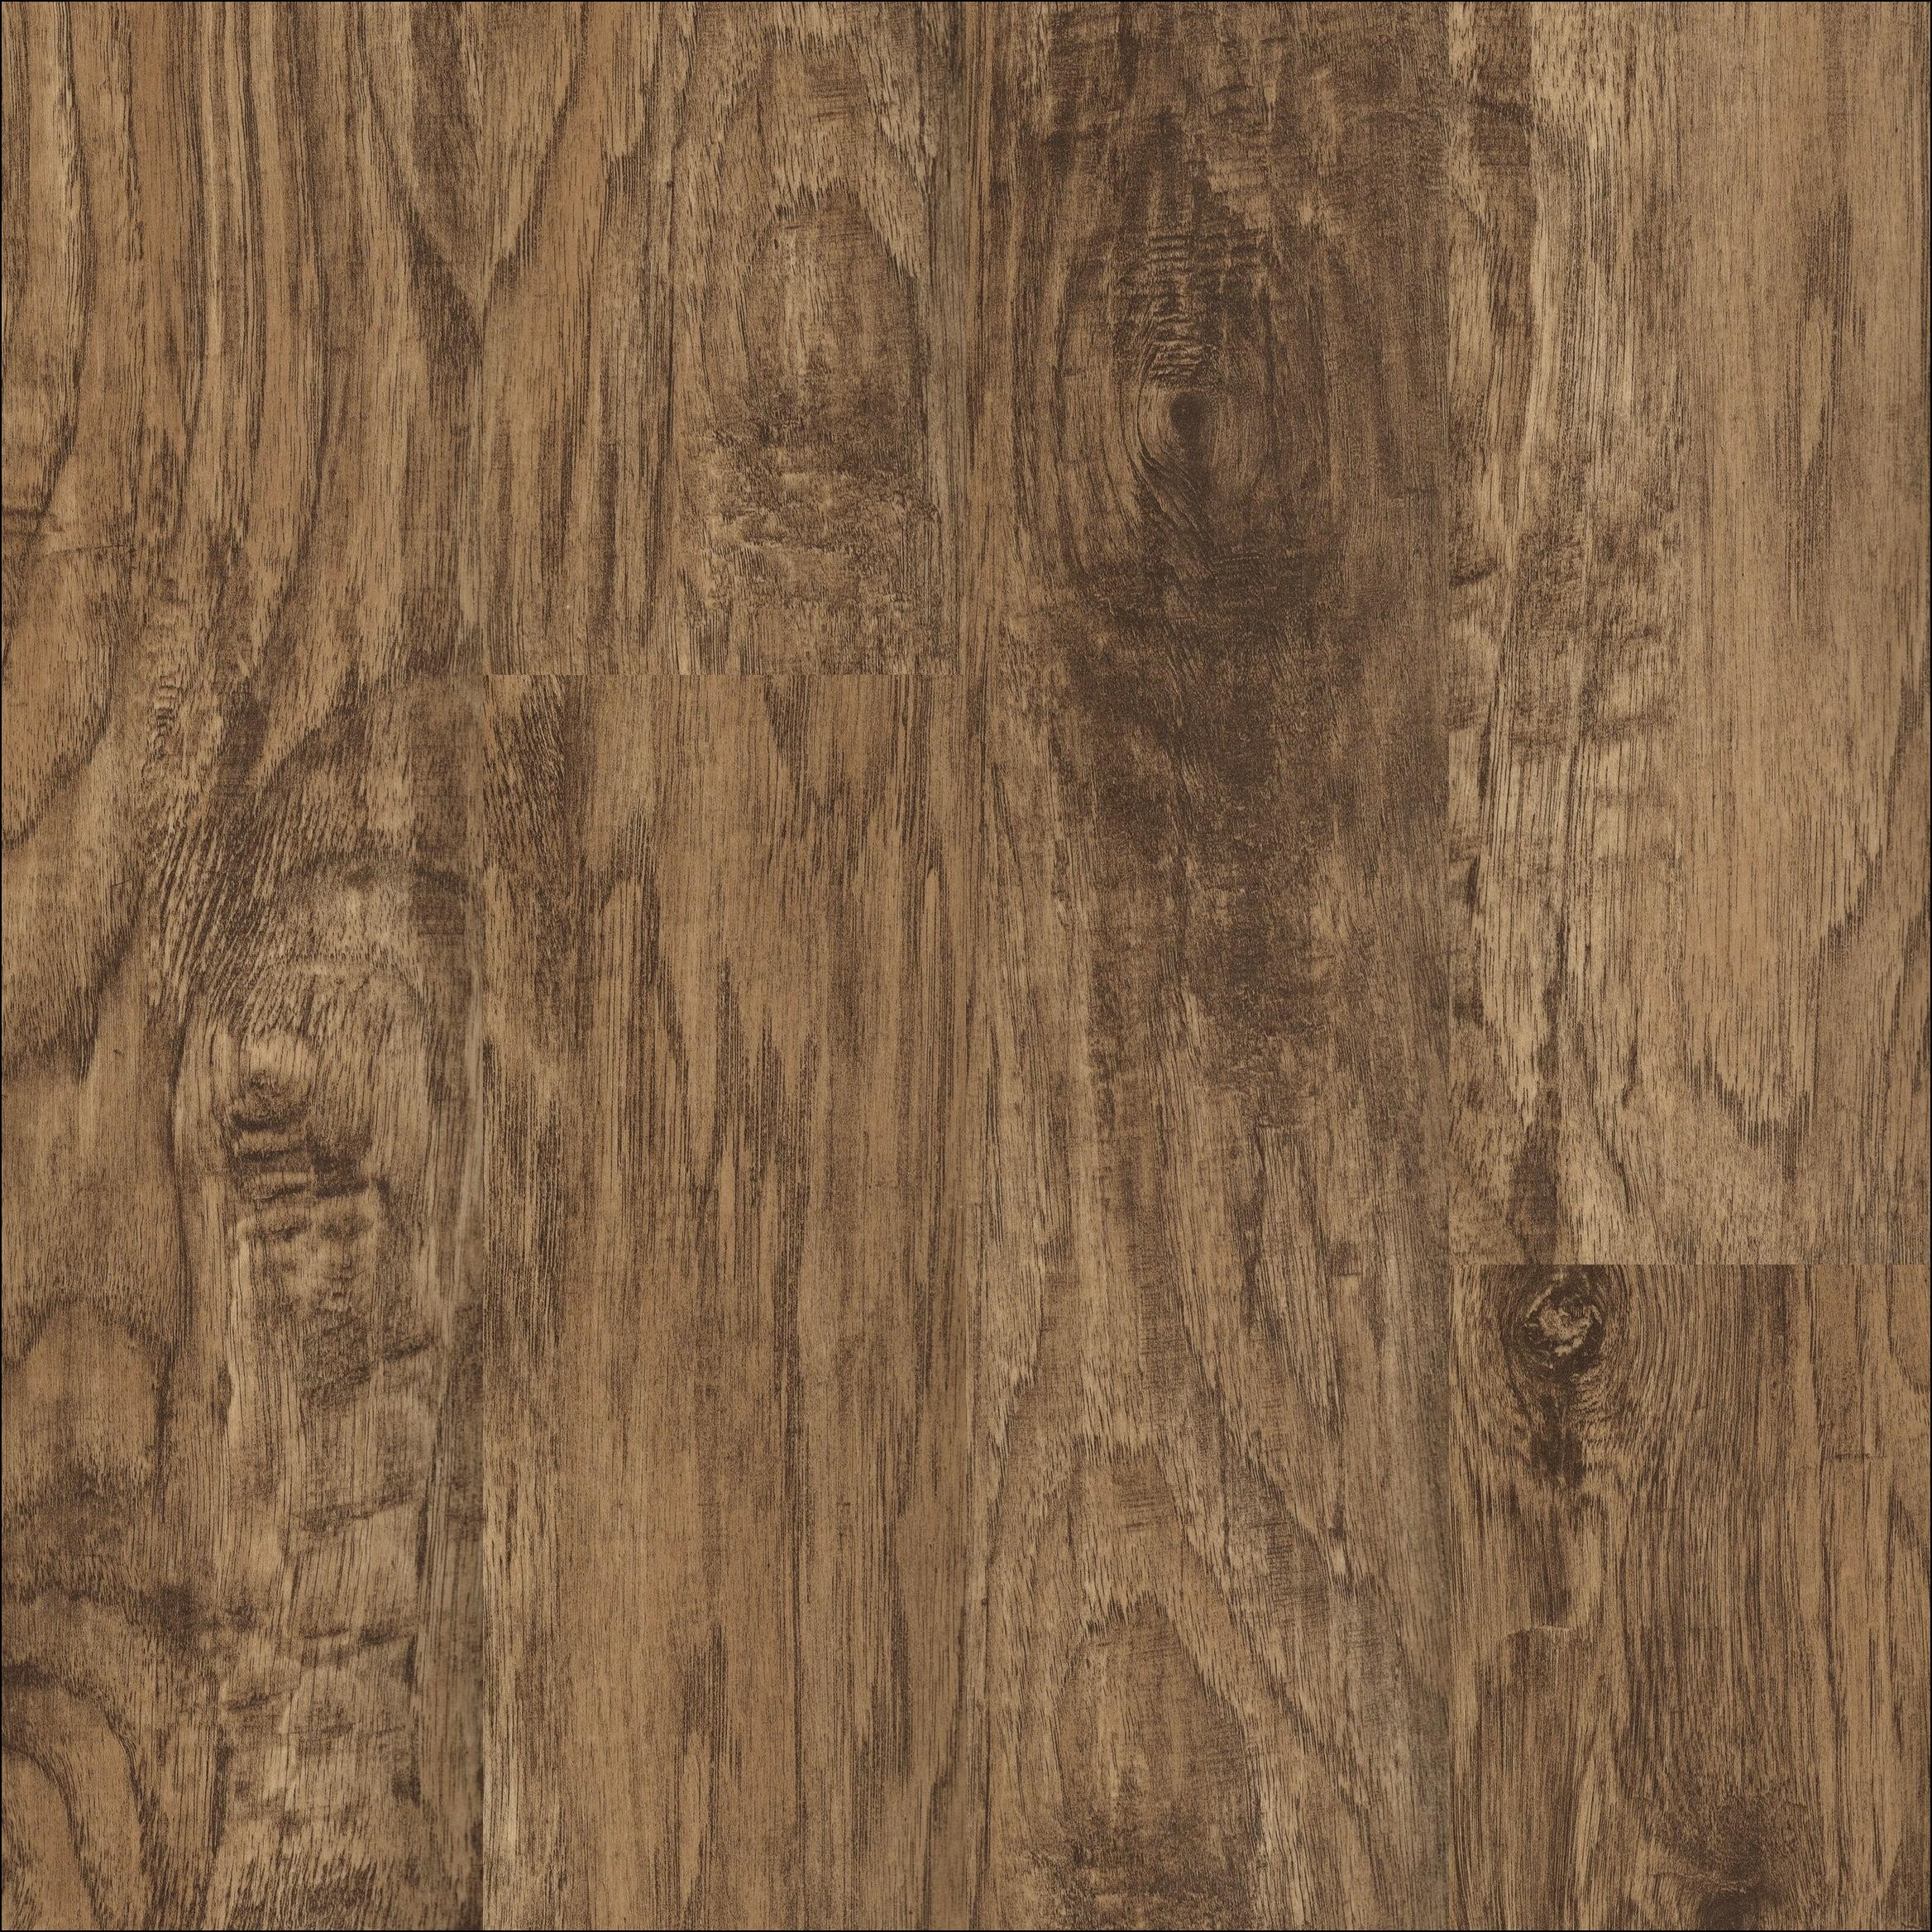 Hand Scraped Hardwood Flooring Canada Of Hand Scraped Vinyl Plank Flooring Reviews Flooring Ideas with Regard to Hand Scraped Vinyl Plank Flooring Reviews Stock How to Clean Vinyl Plank Flooring Luxury Multi Width